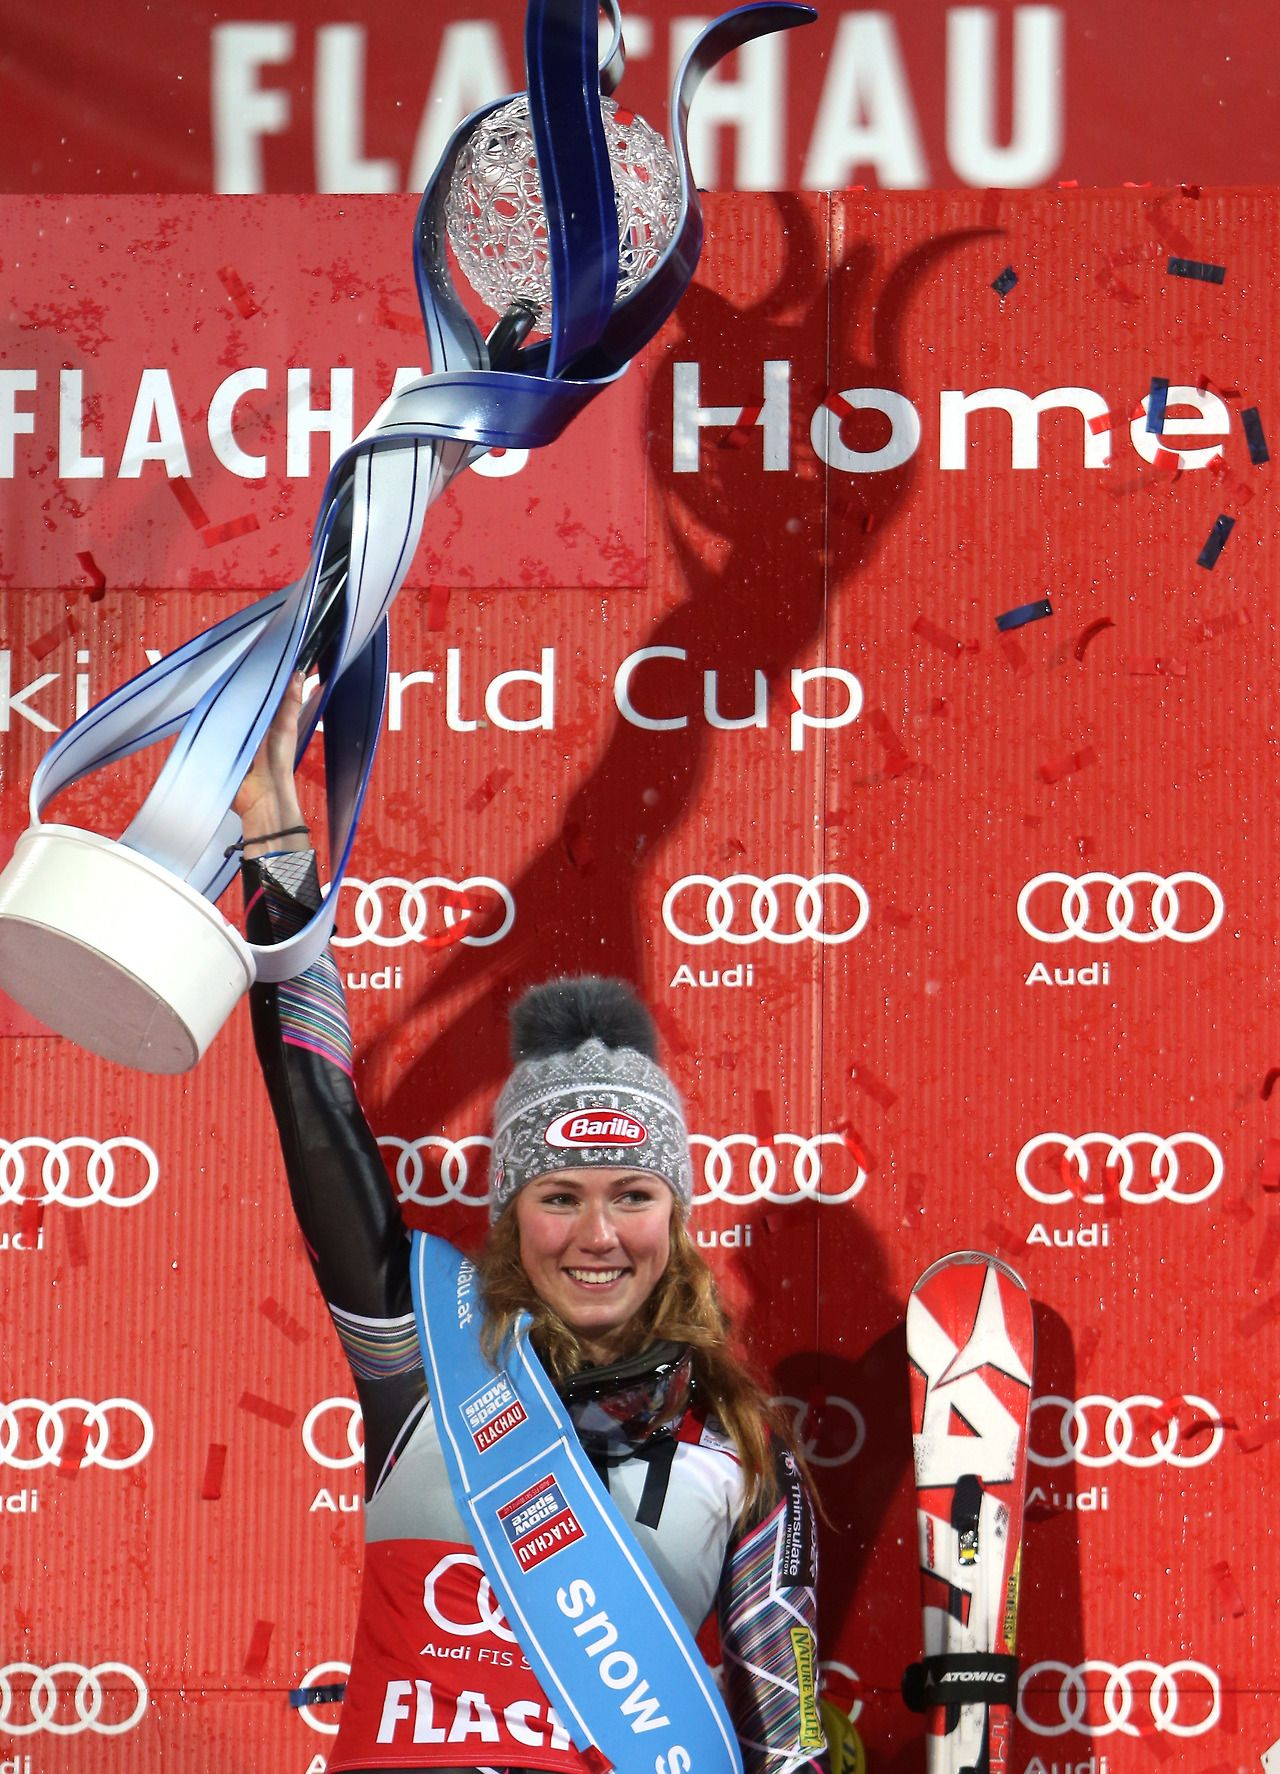 Mikaela Shiffrin Fanclub With Images Mikaela Shiffrin Ski